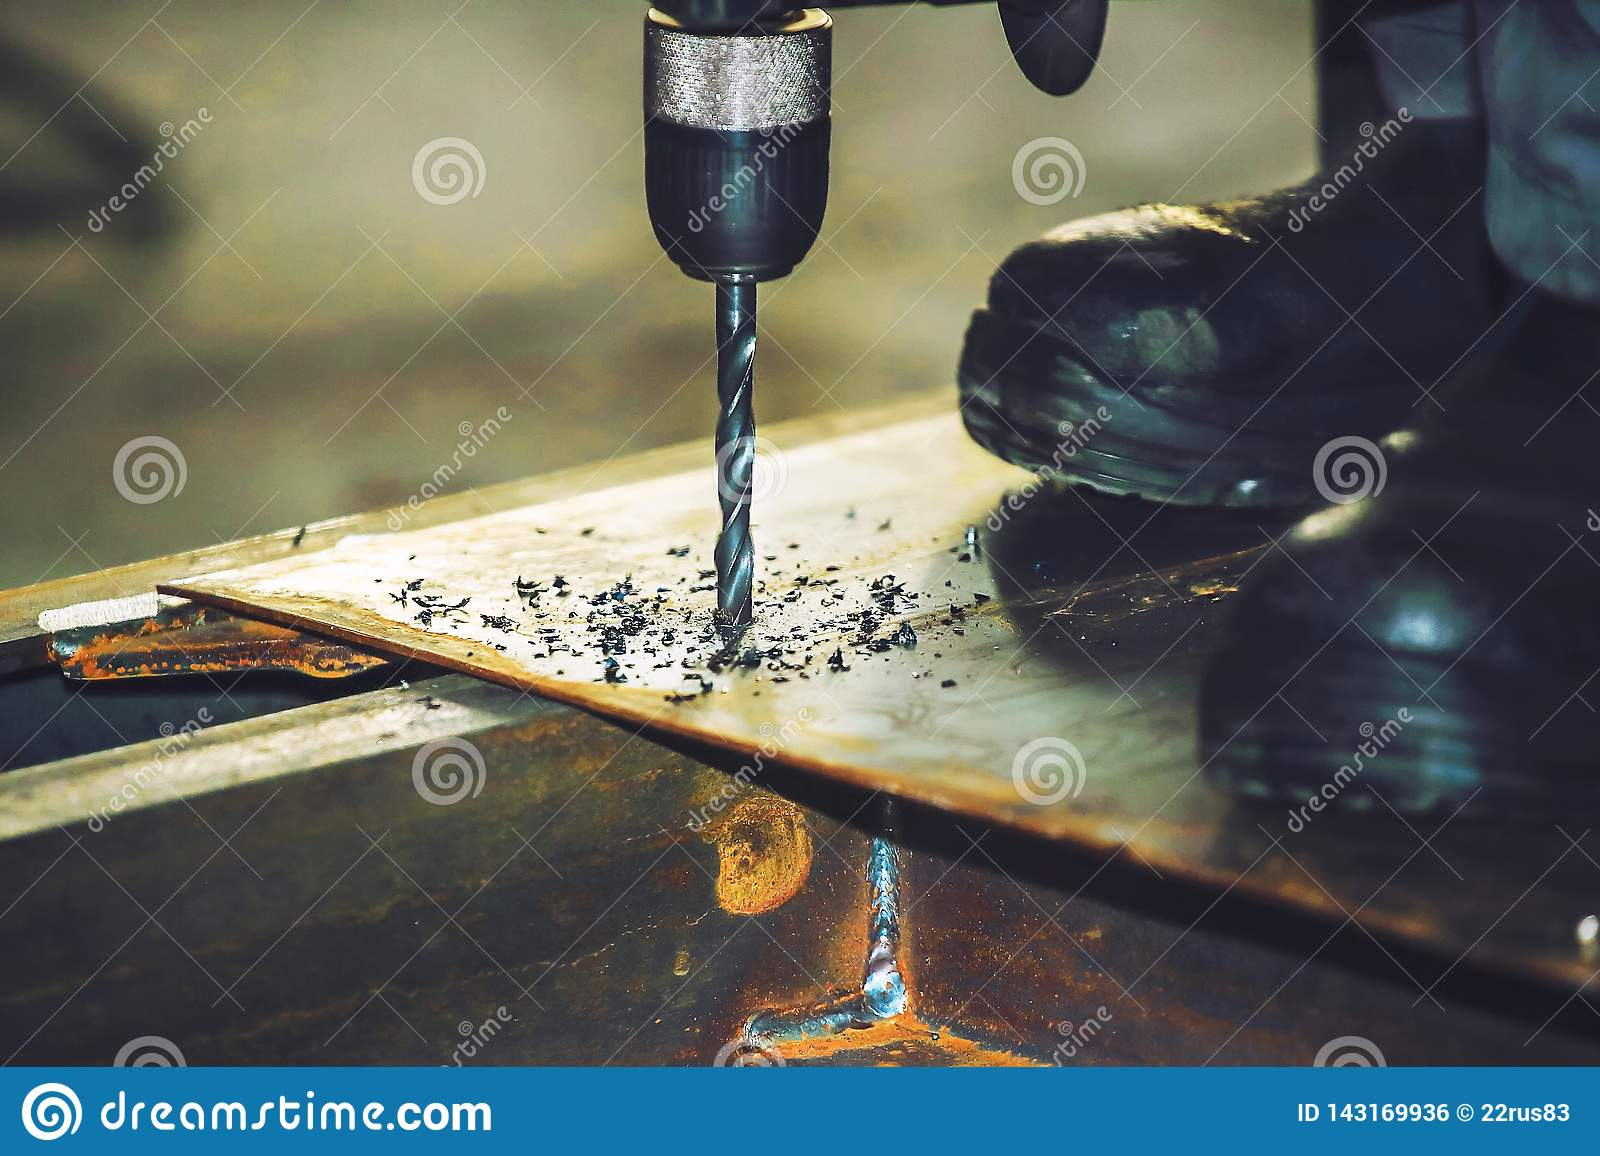 Drilling metal sheet tool. Production background for construction companies